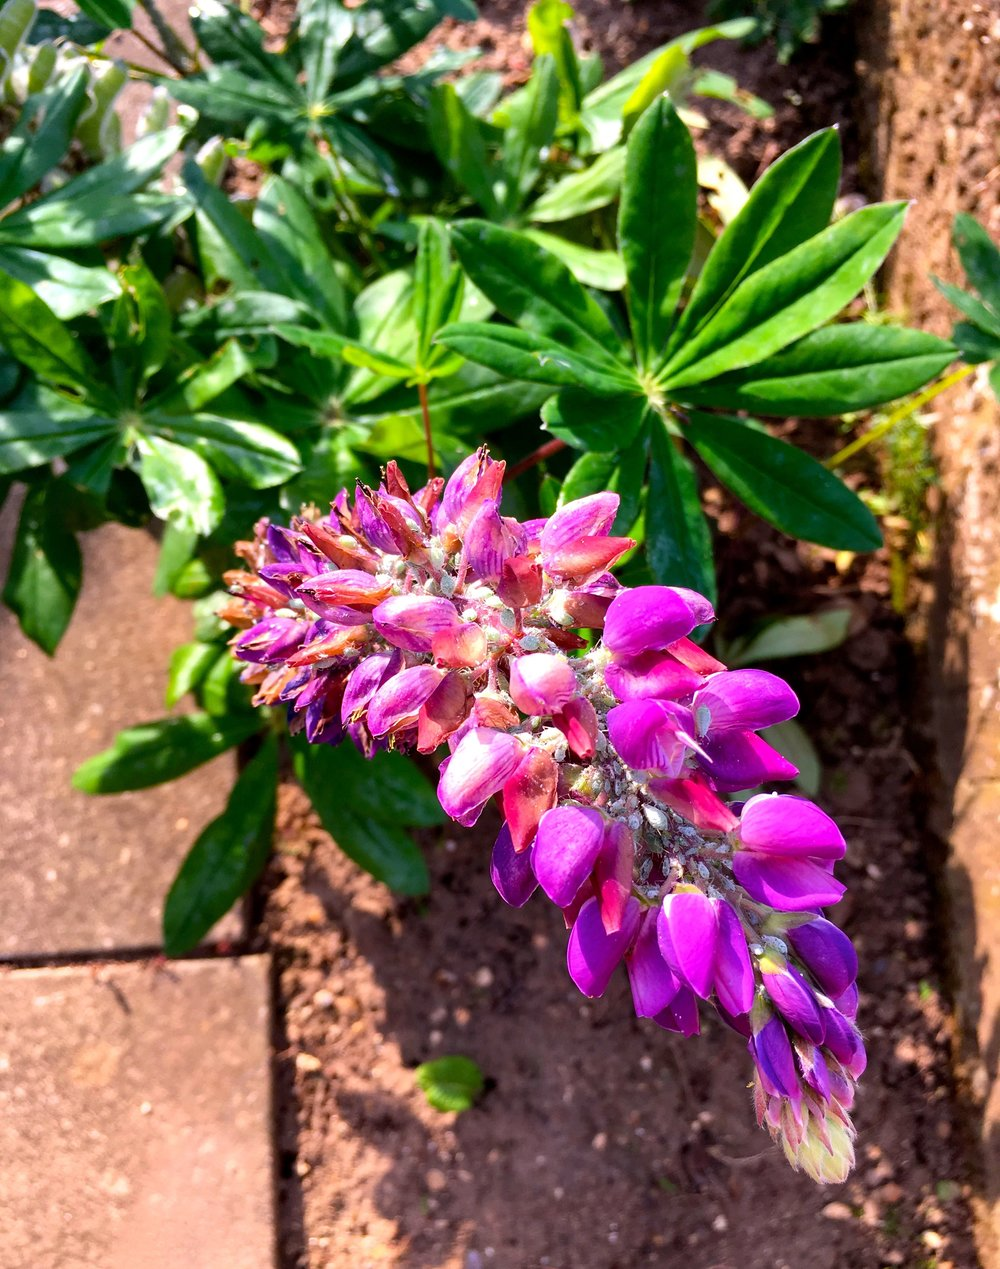 And the lupins are setting seed in dad's norfolk garden